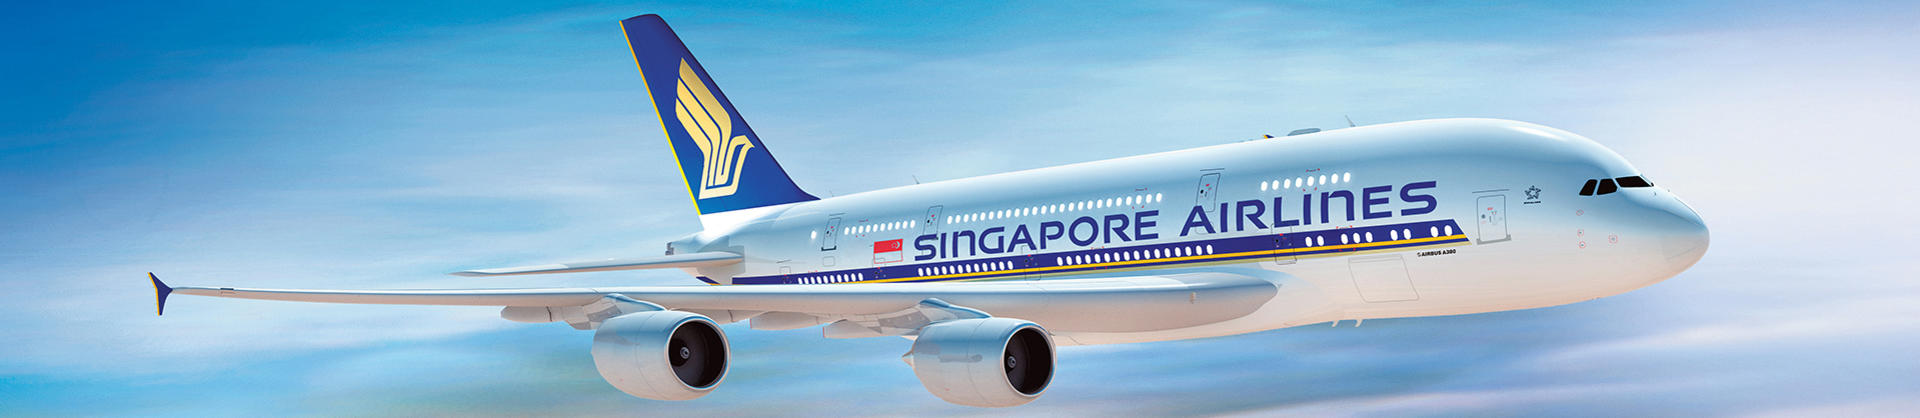 Singapore Airlines aircraft